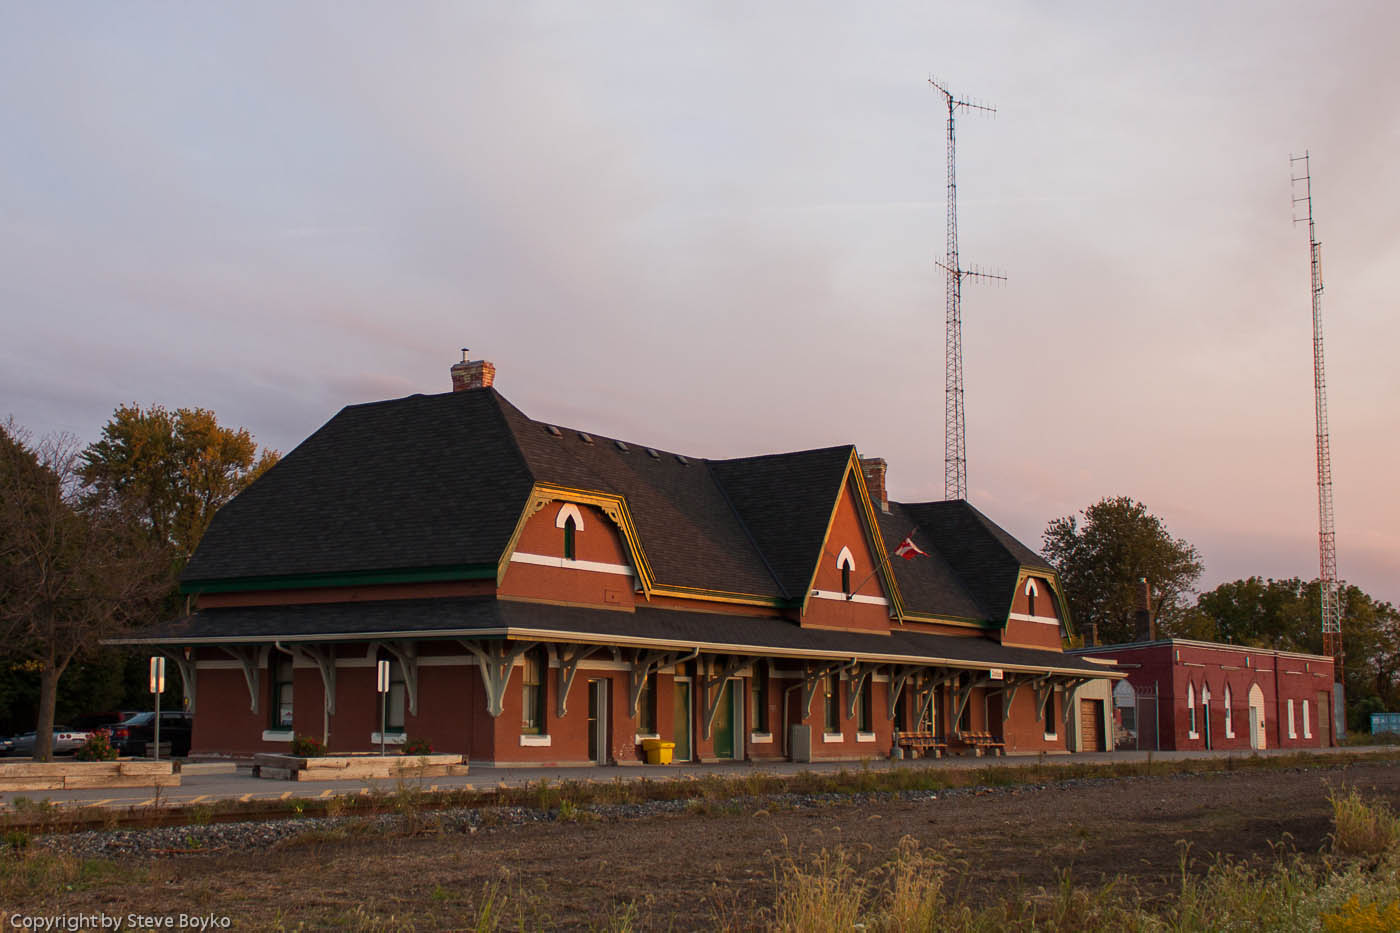 The VIA Rail station in Chatham, Ontario 2012/09/26